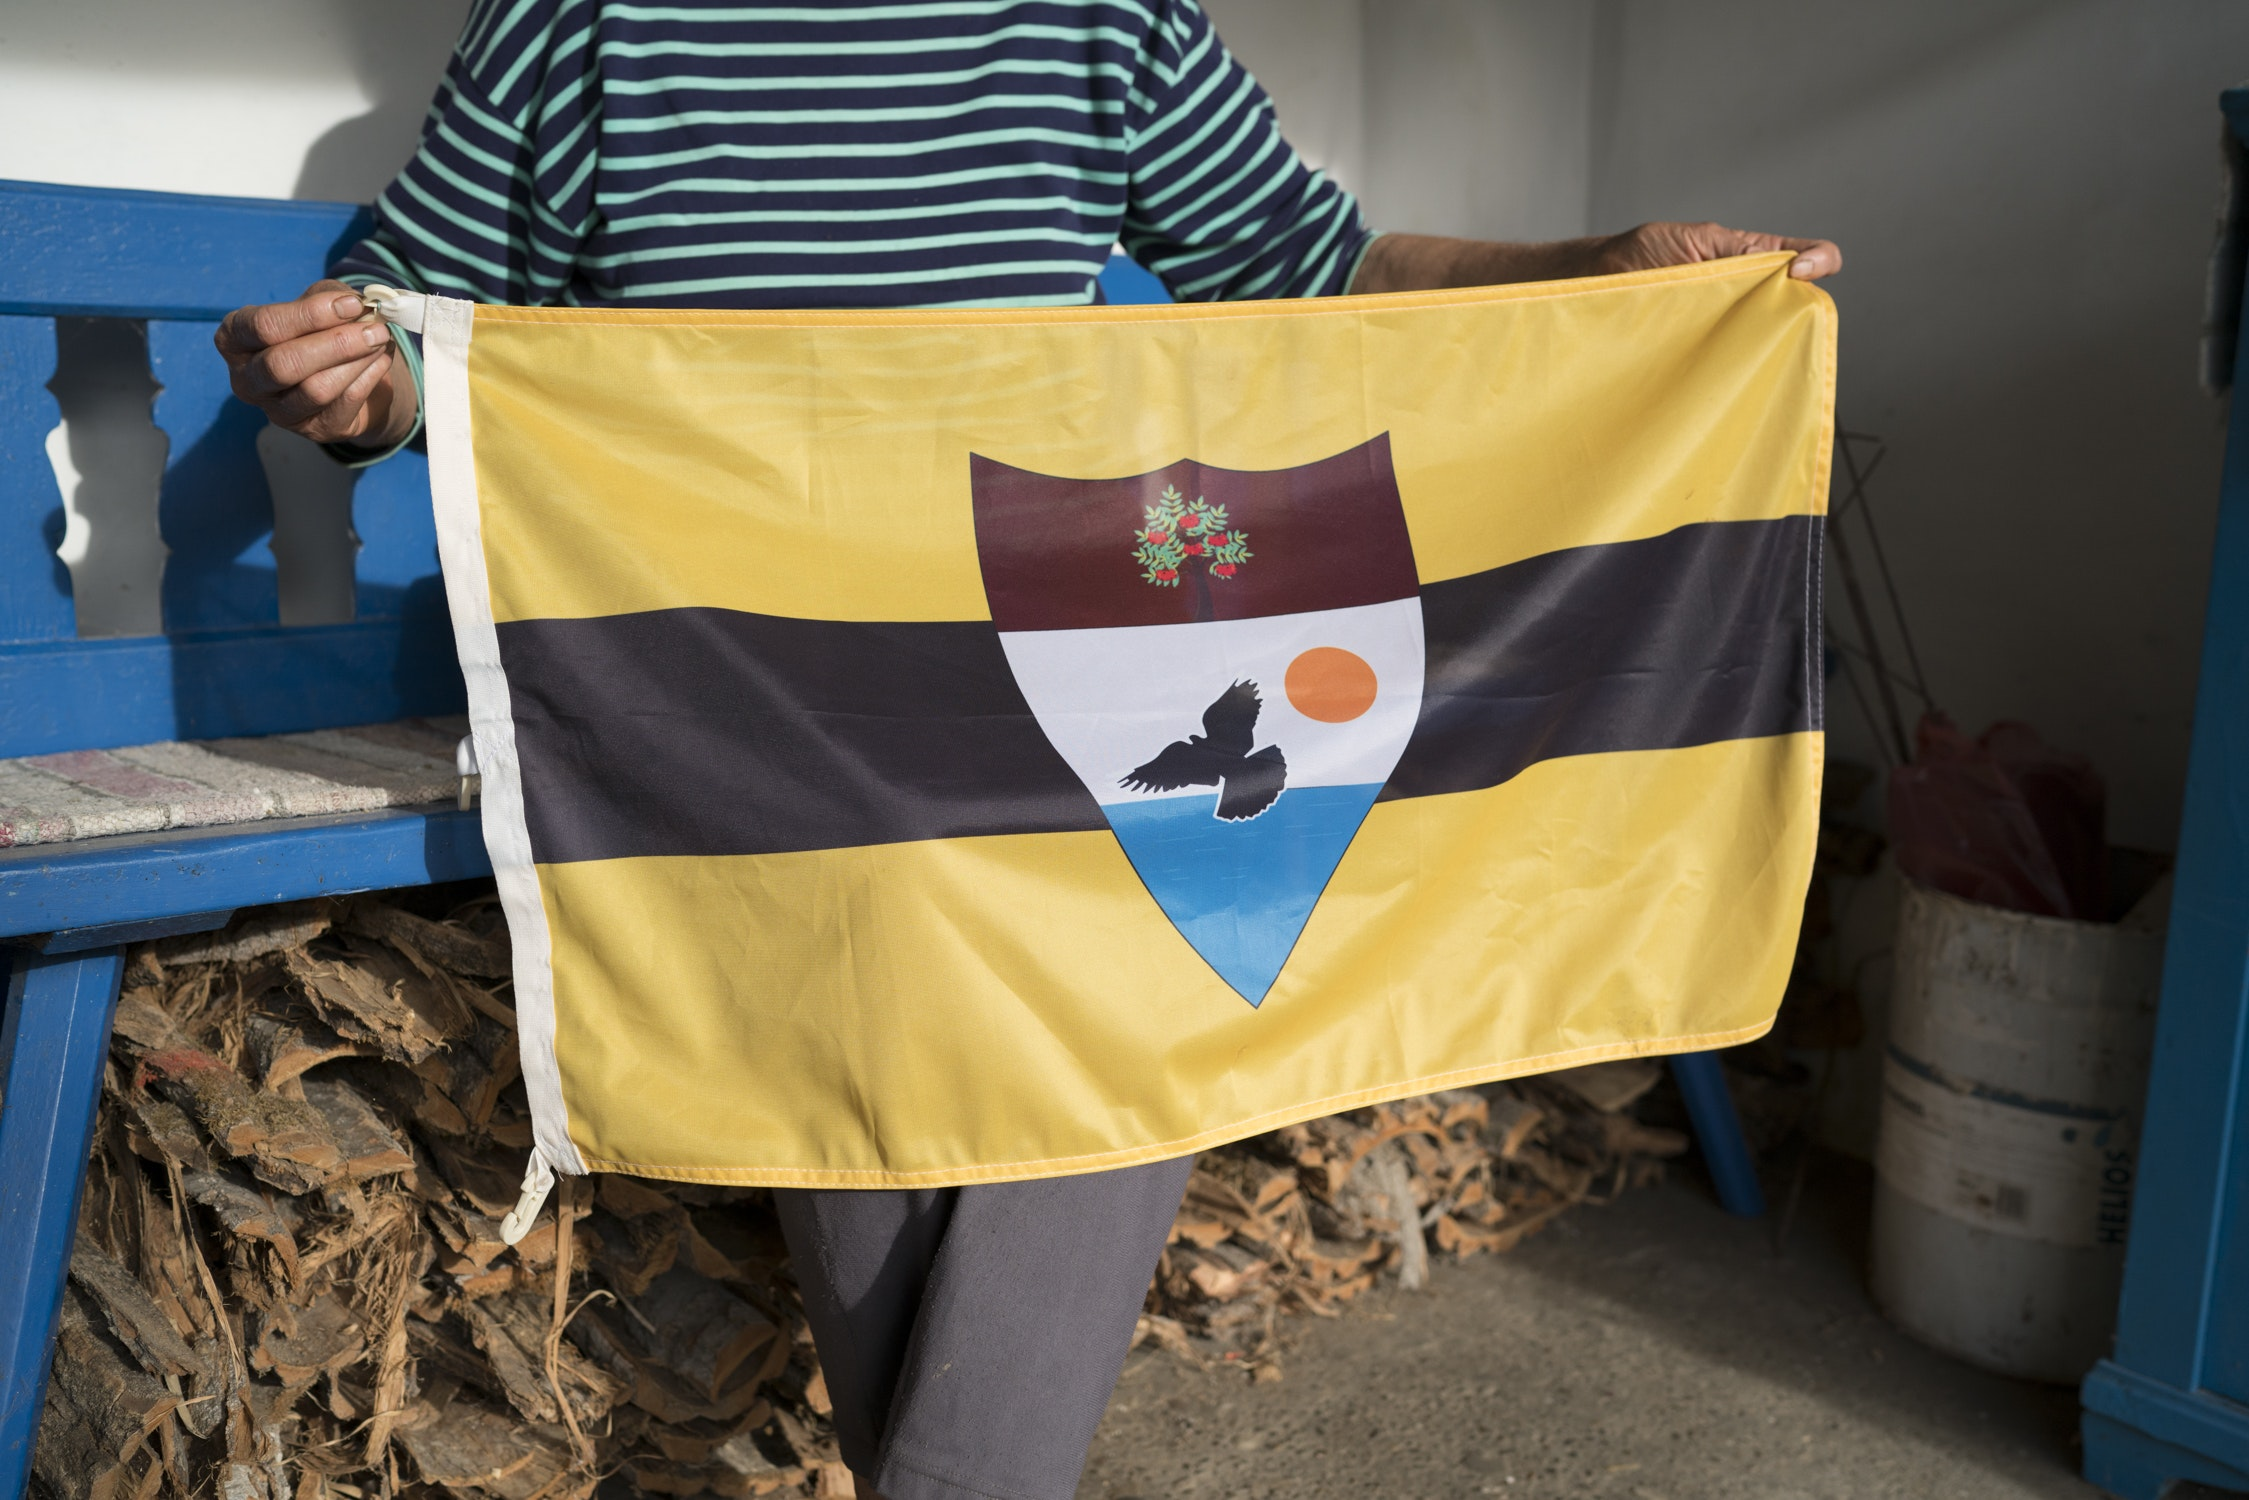 The flag of Liberland, a contested patch of no-man's-land between Serbia and Croatia